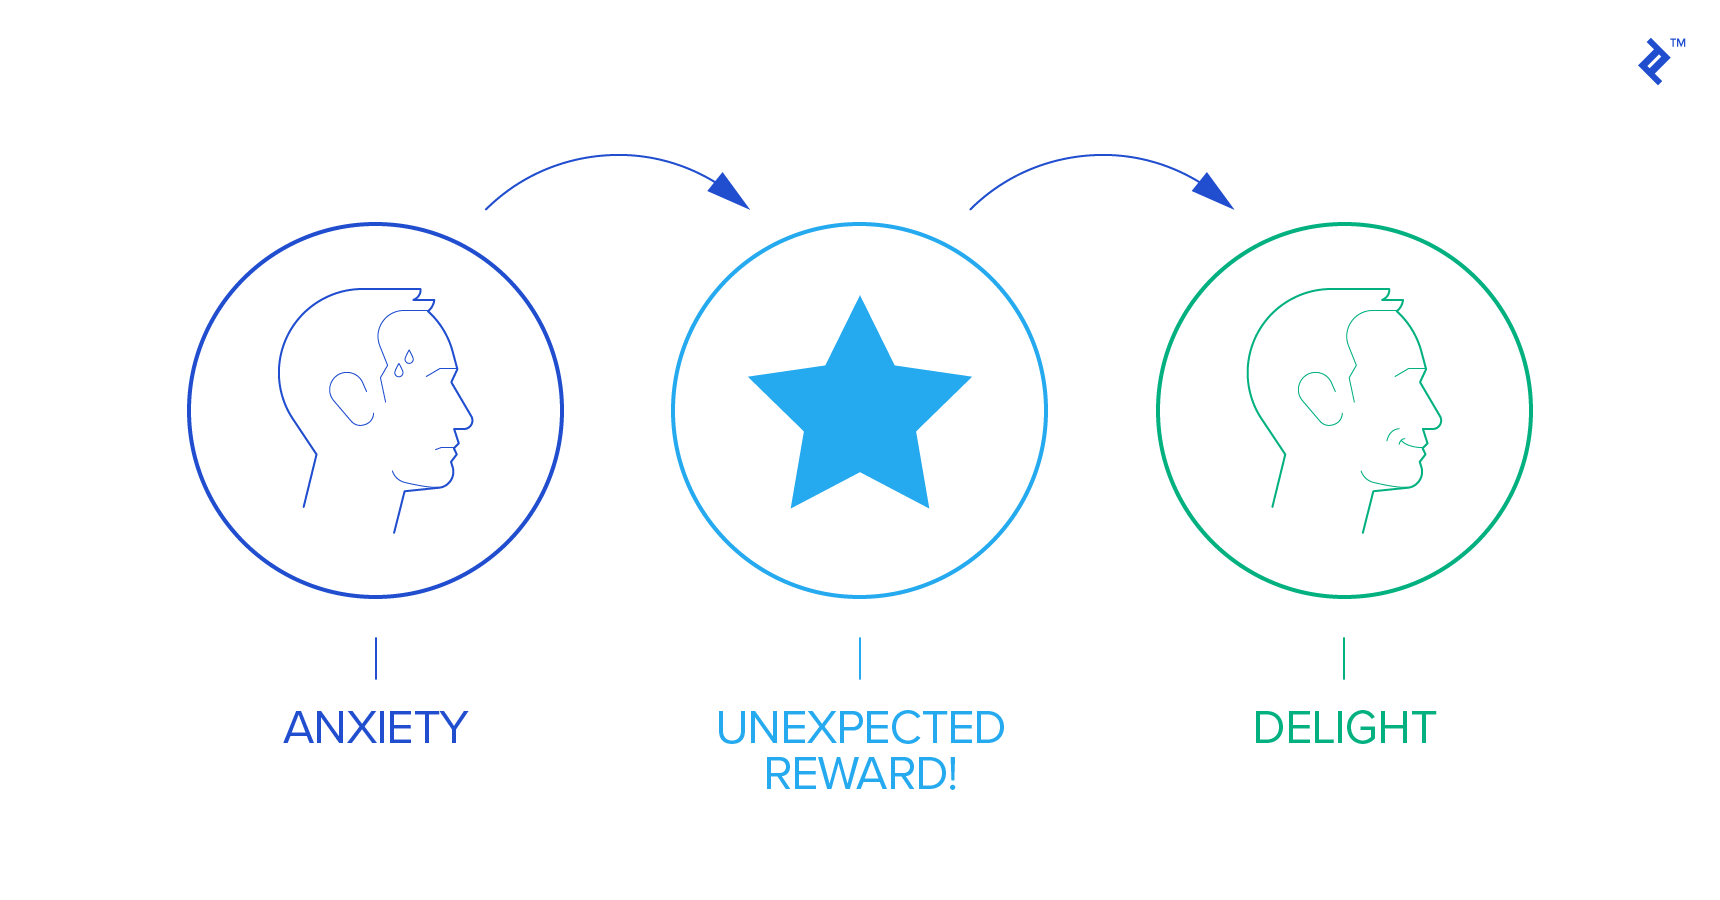 Designing delightful UX to improve the consumer experience